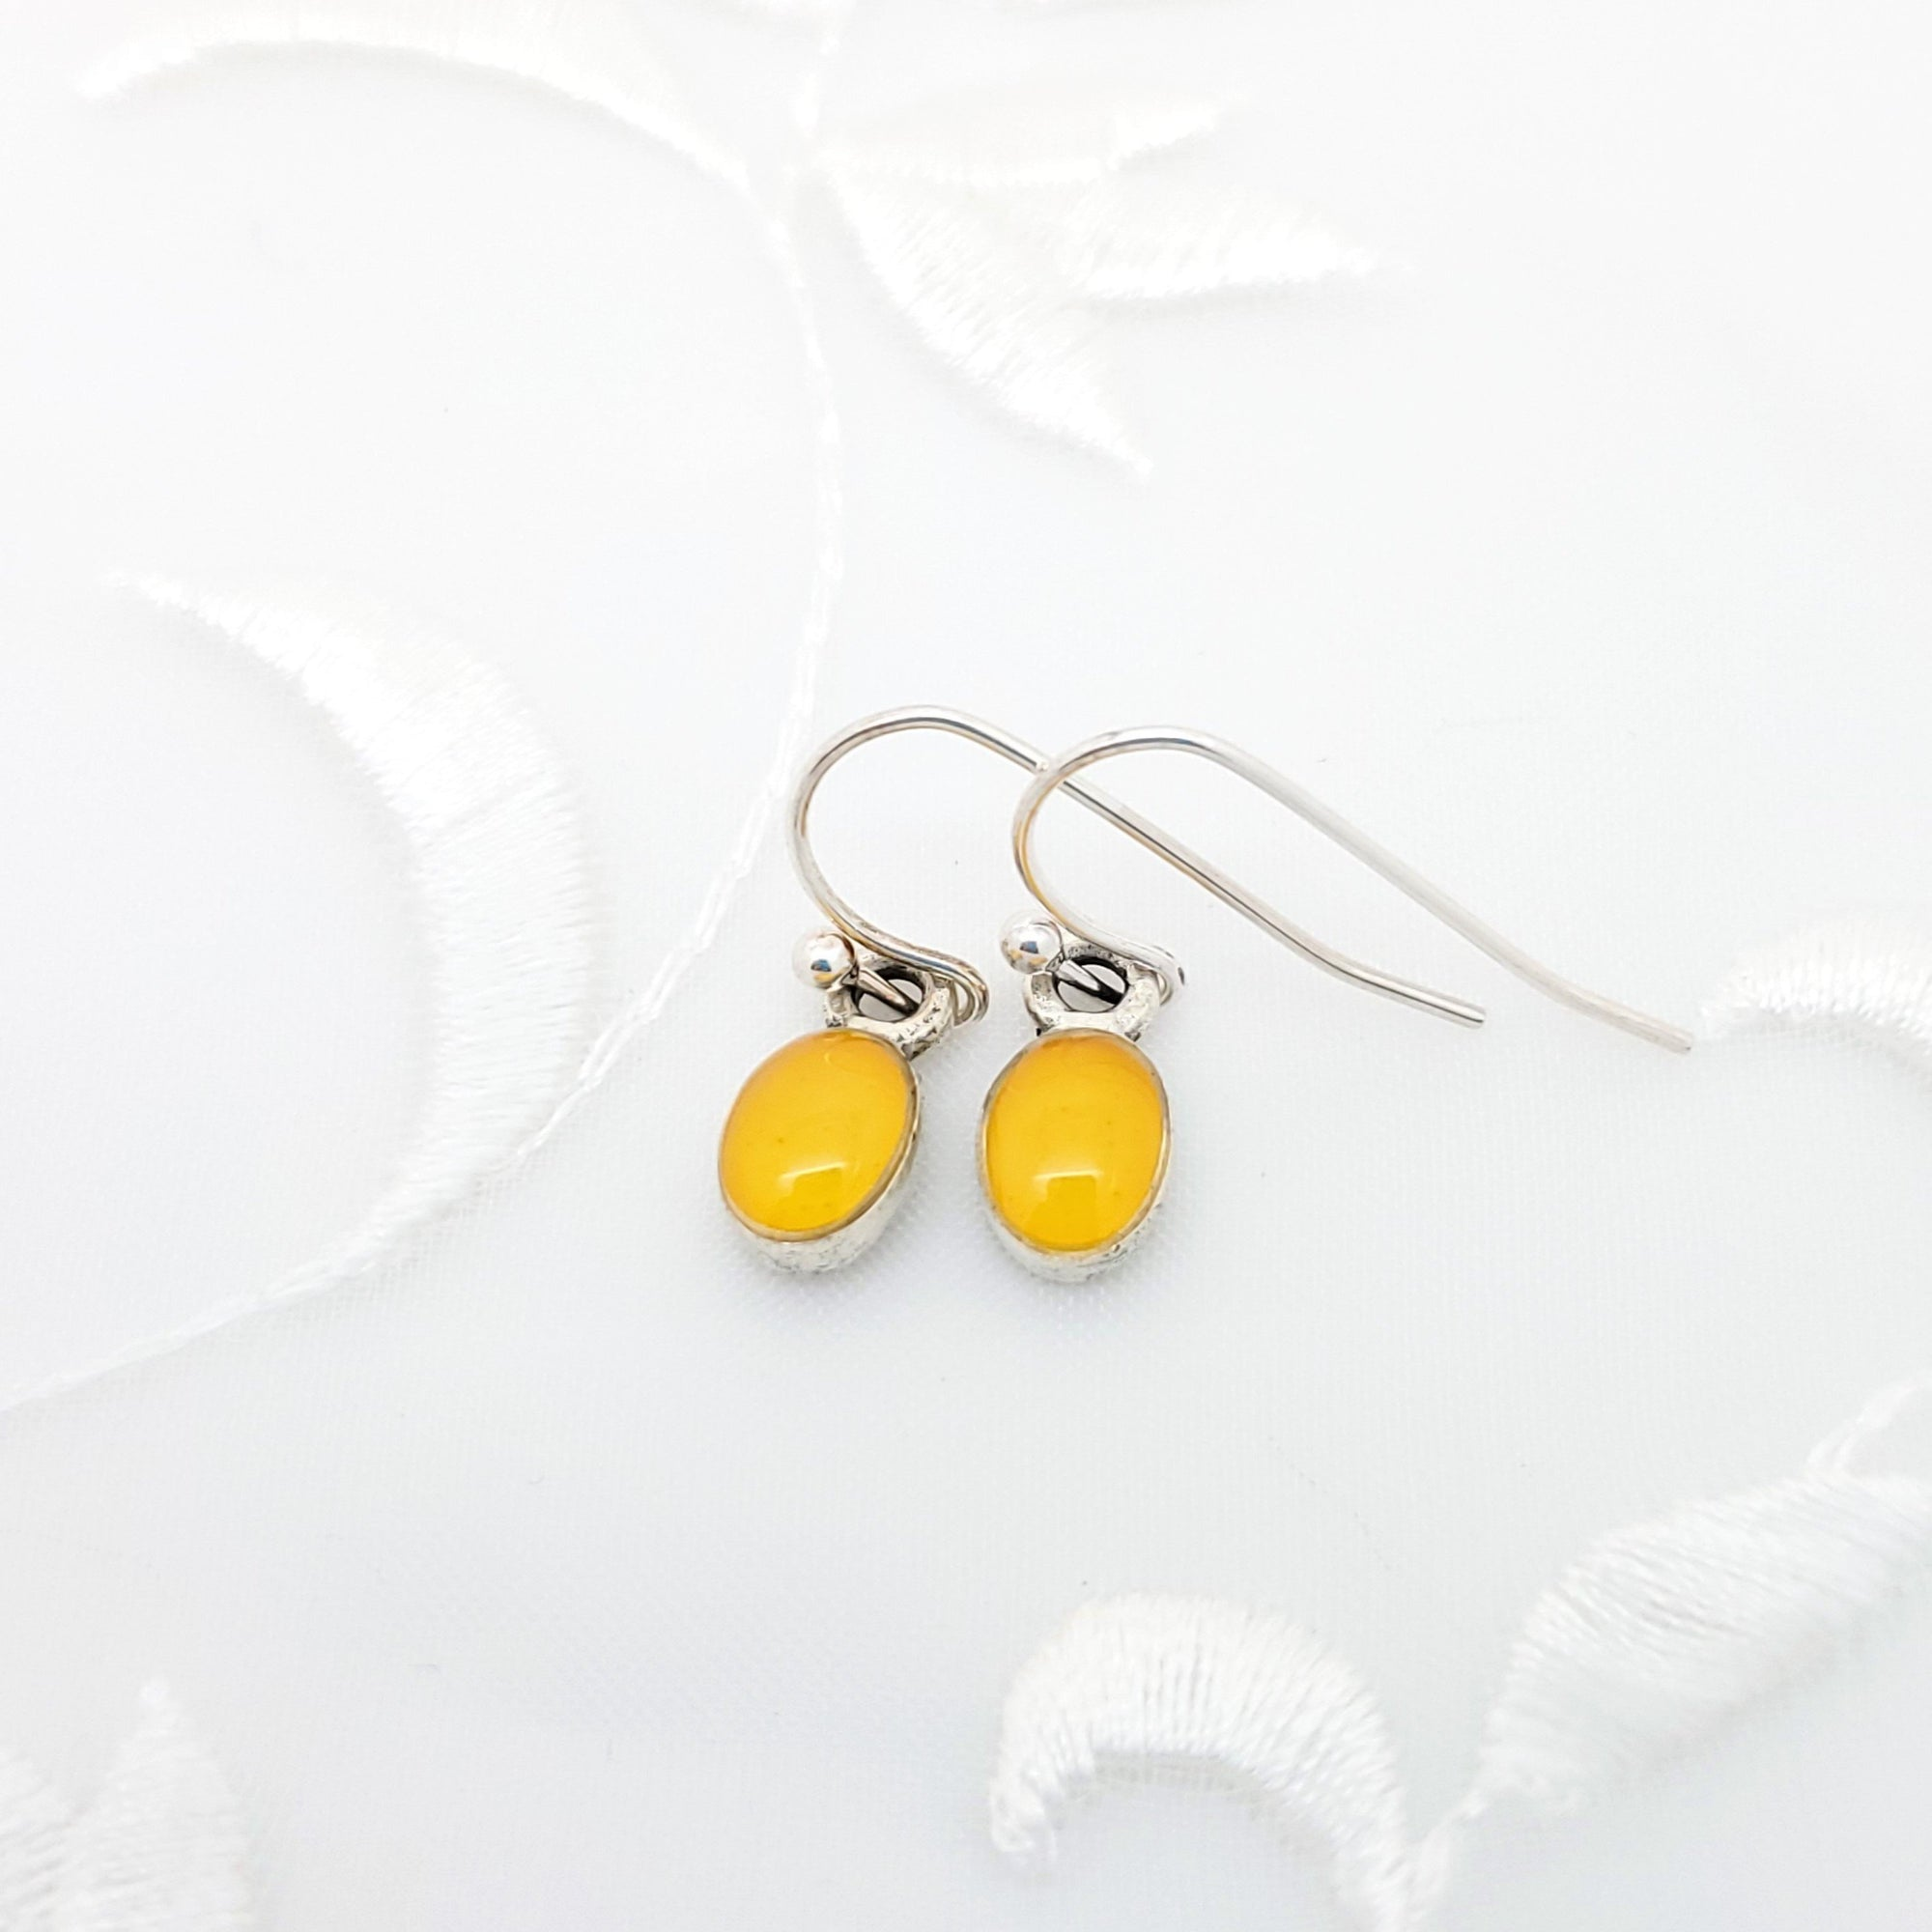 Antique Silver Tiny Oval Earrings with Yellow Resin